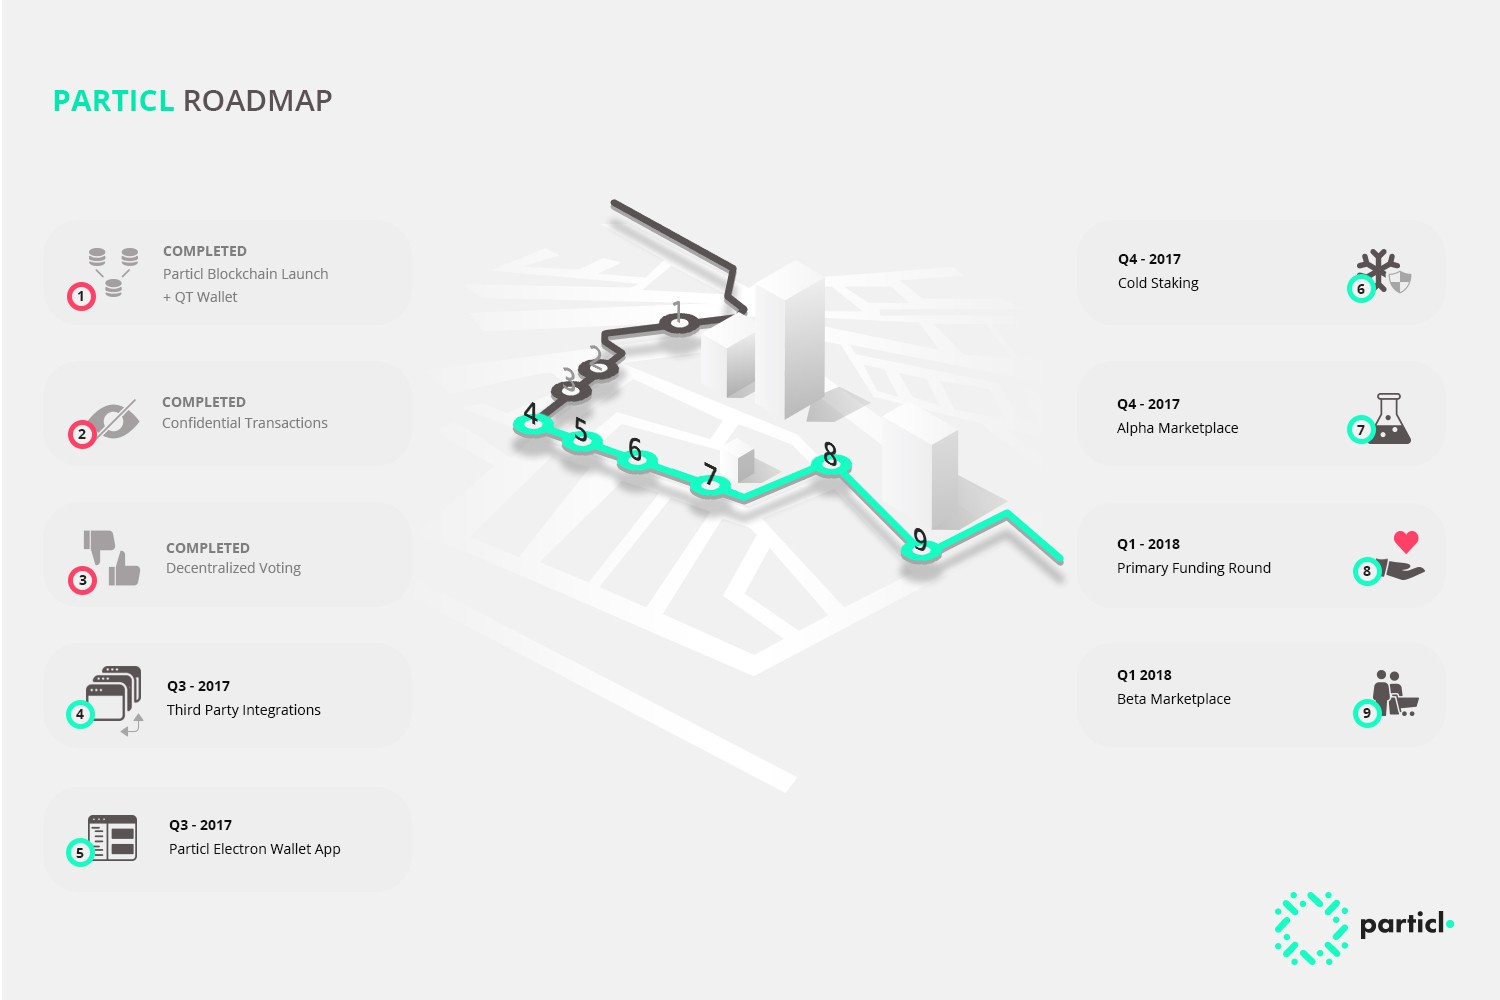 version 1 of the roadmap is archived here